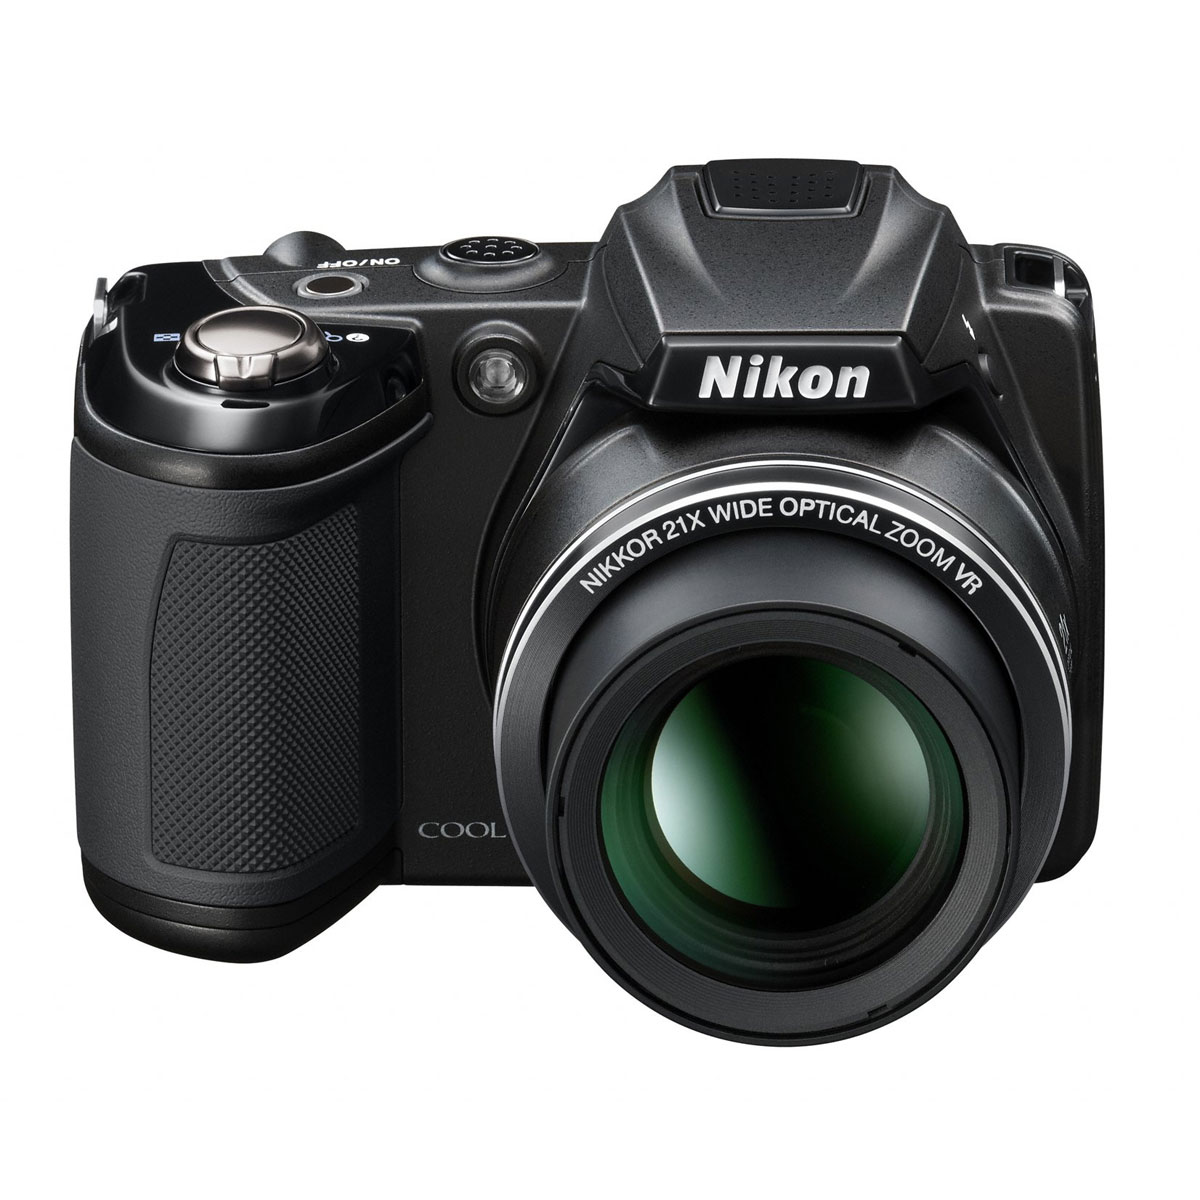 NIKON DSC COOLPIX L310-PTP DRIVERS FOR WINDOWS 7